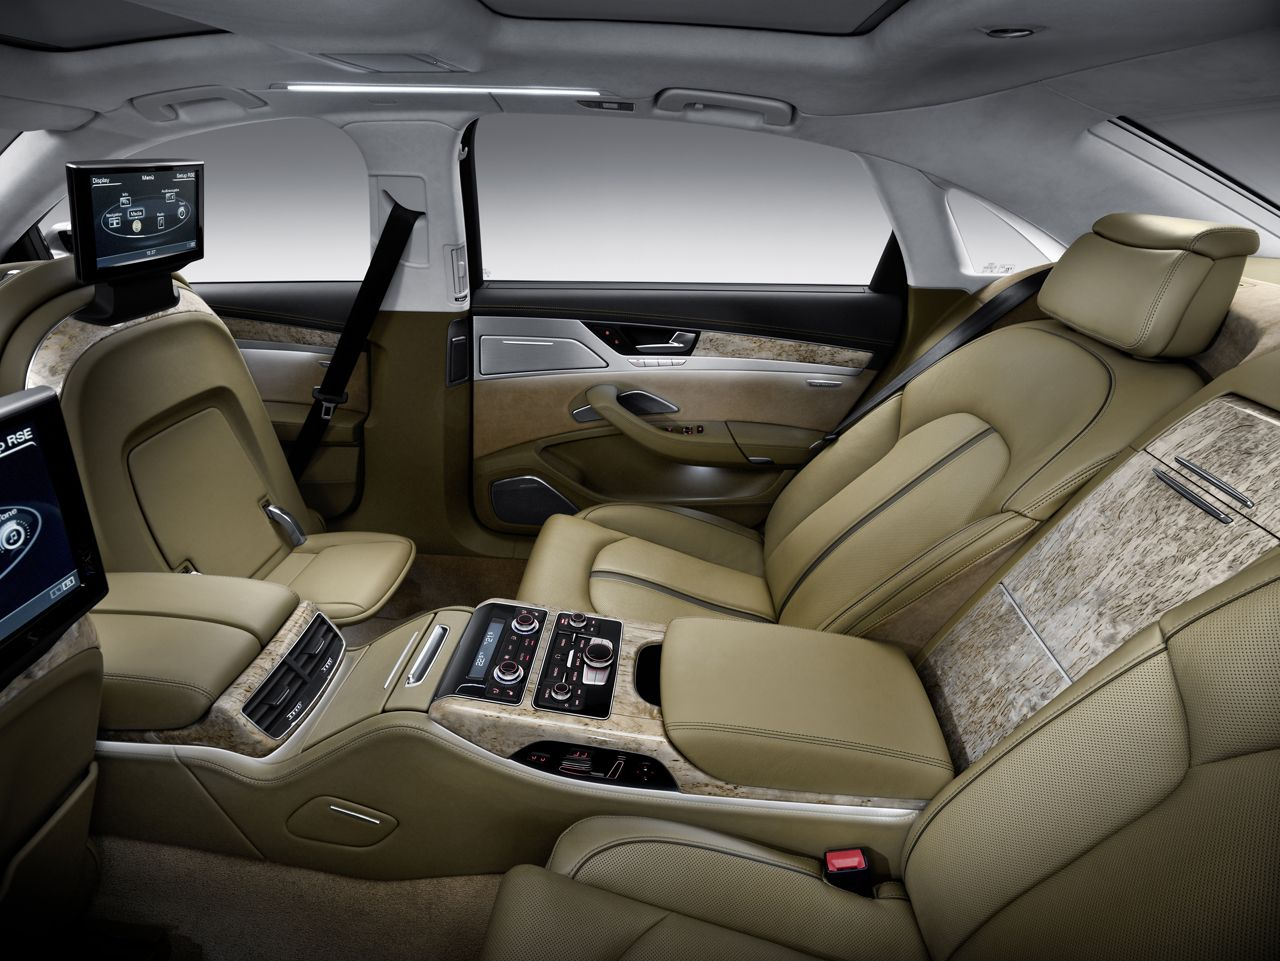 16 2011 Audi A8l Press Cars Pinterest Audi Cars And Luxury Cars